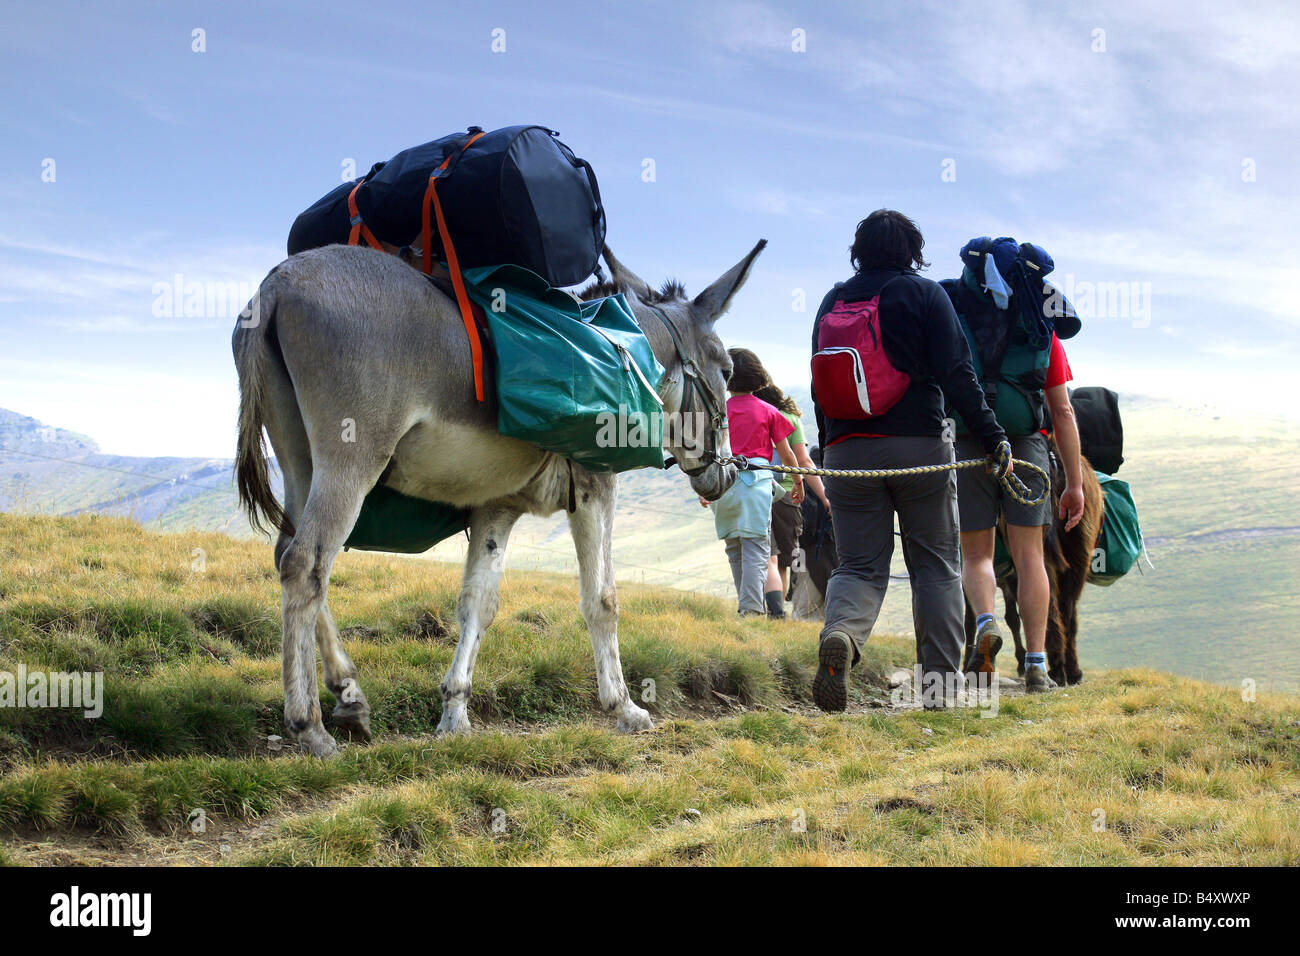 Family walking with donkeys carrying luggage, rear view - Stock Image